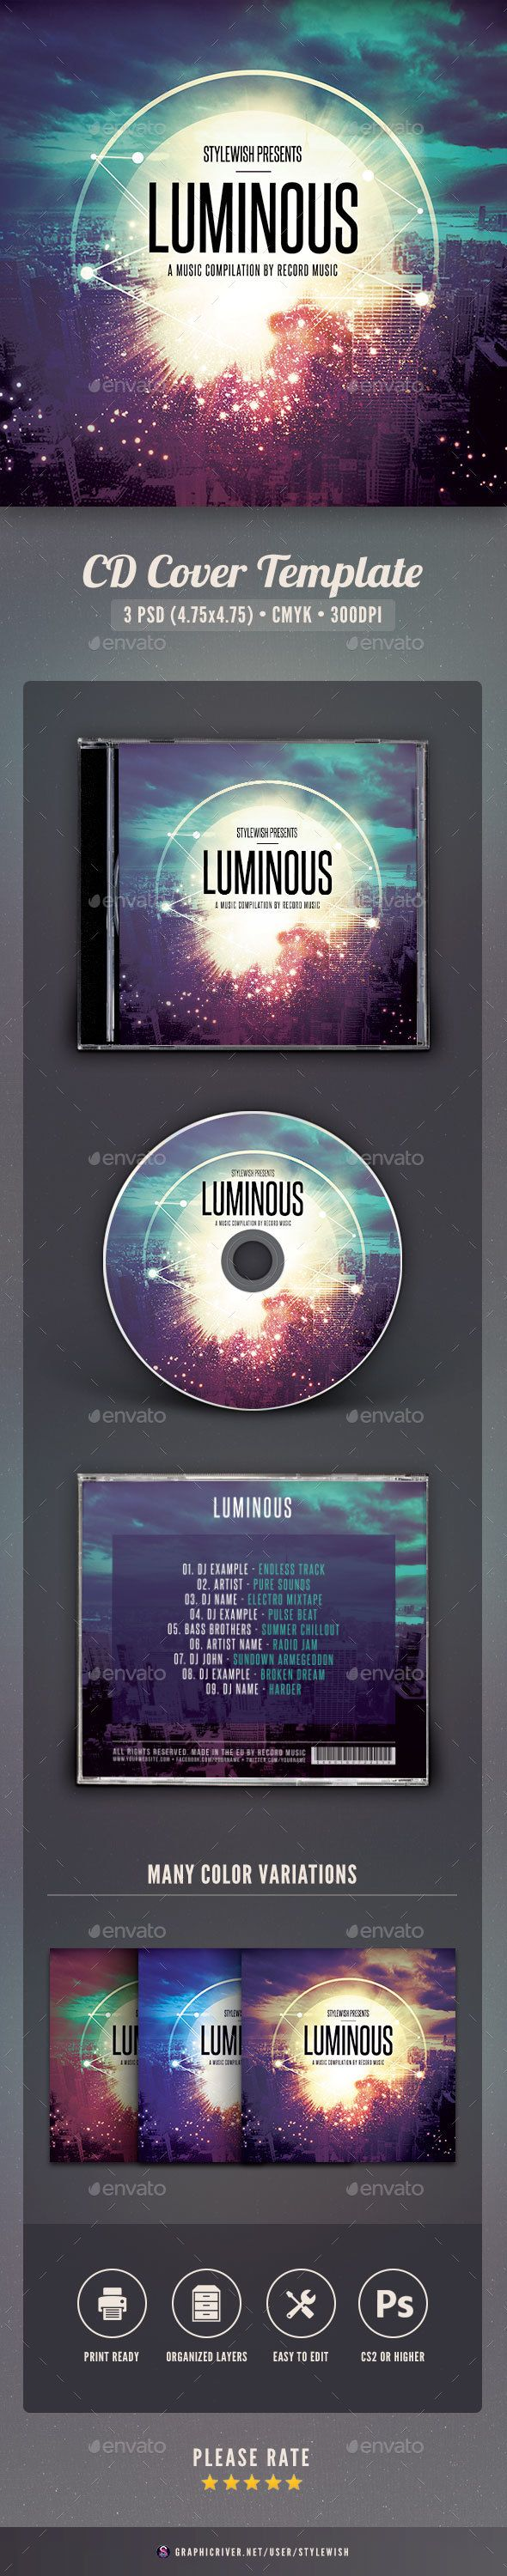 Luminous CD Cover Artwork - CD & DVD Artwork Print Templates